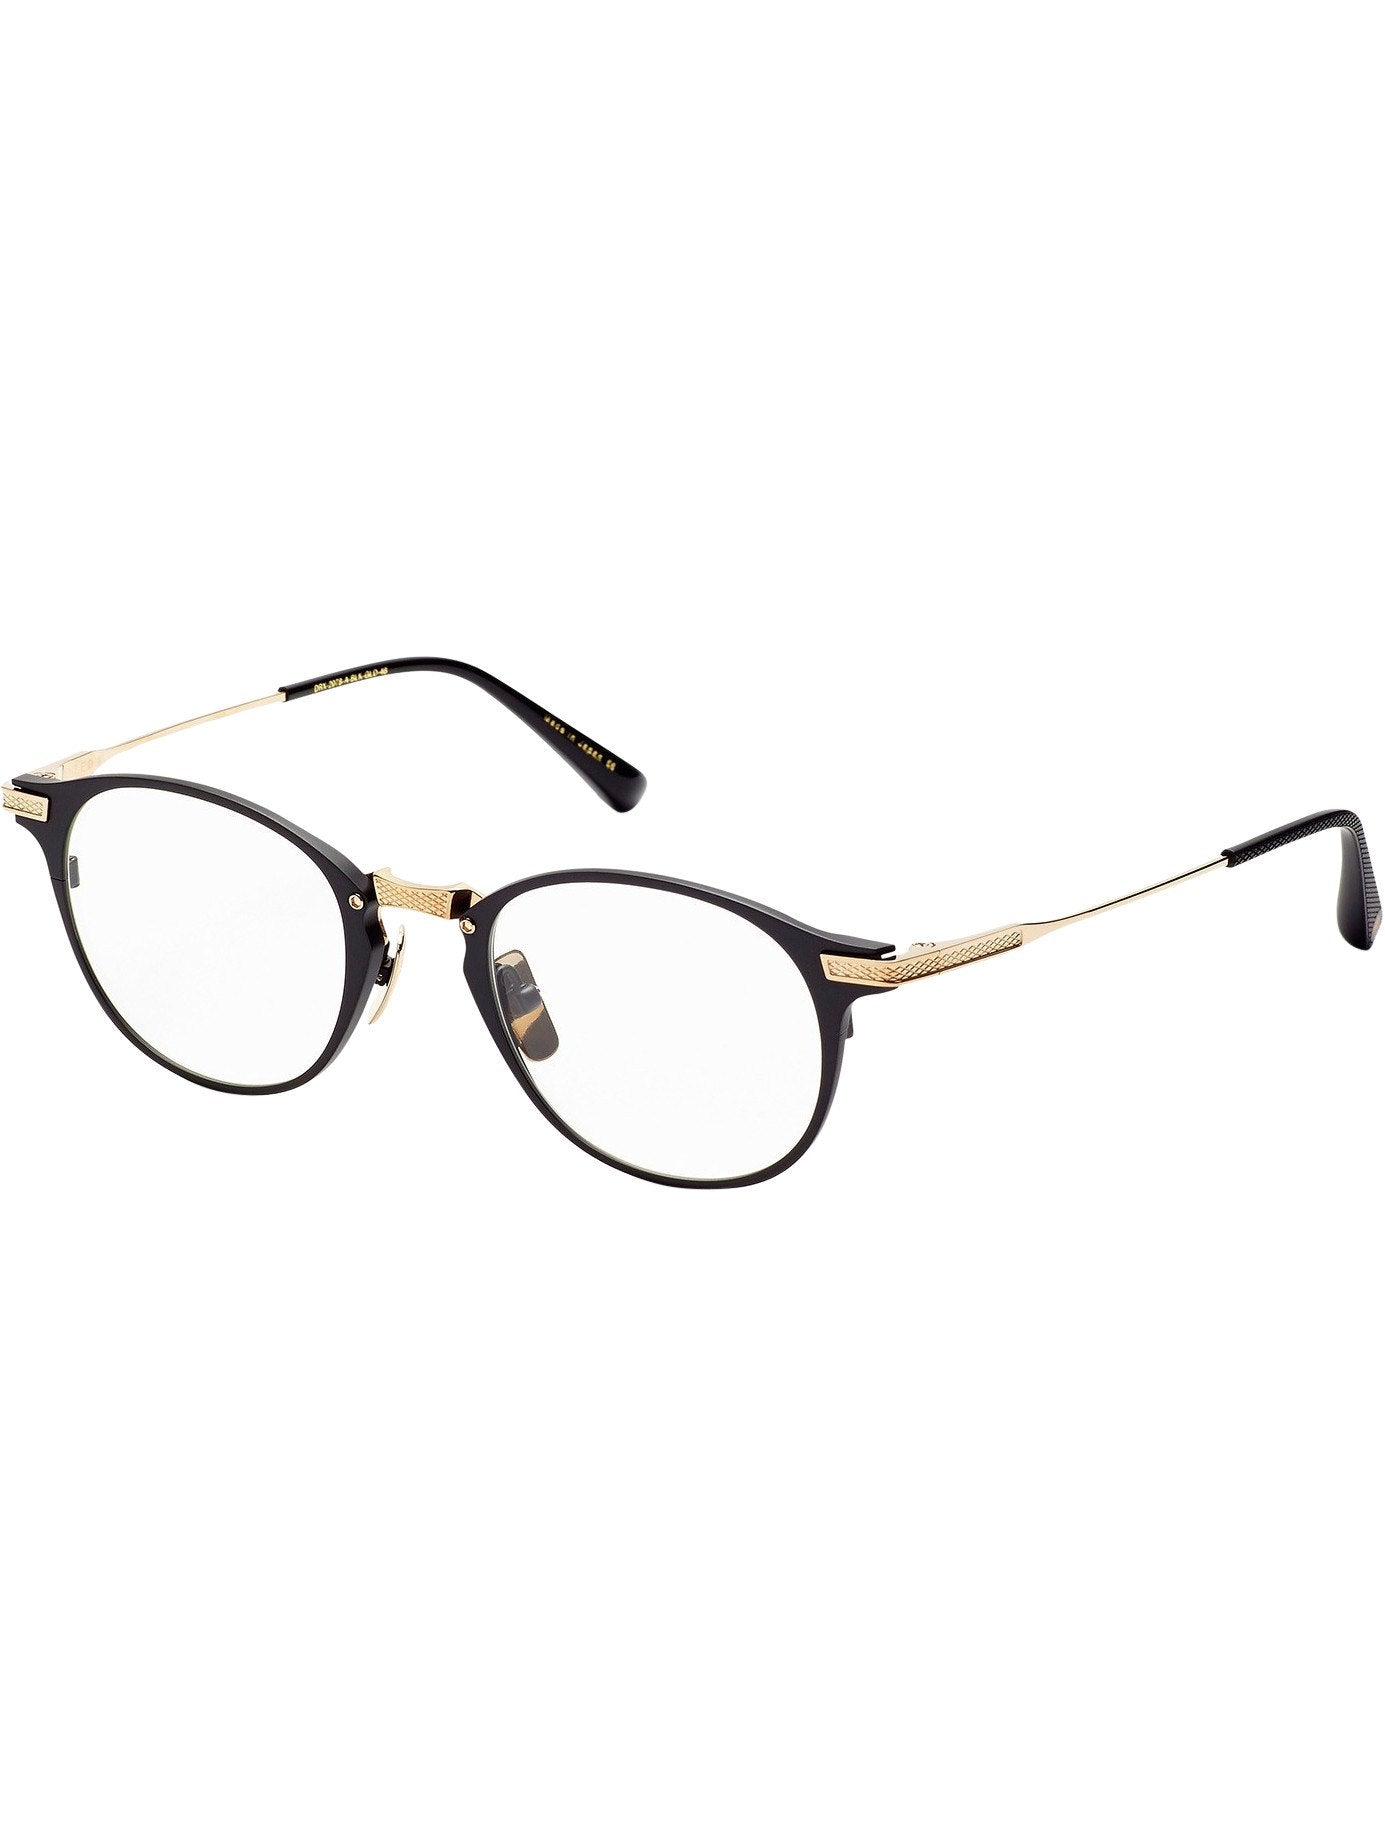 Optical Frame - Dita United DRX-2078A Glasses